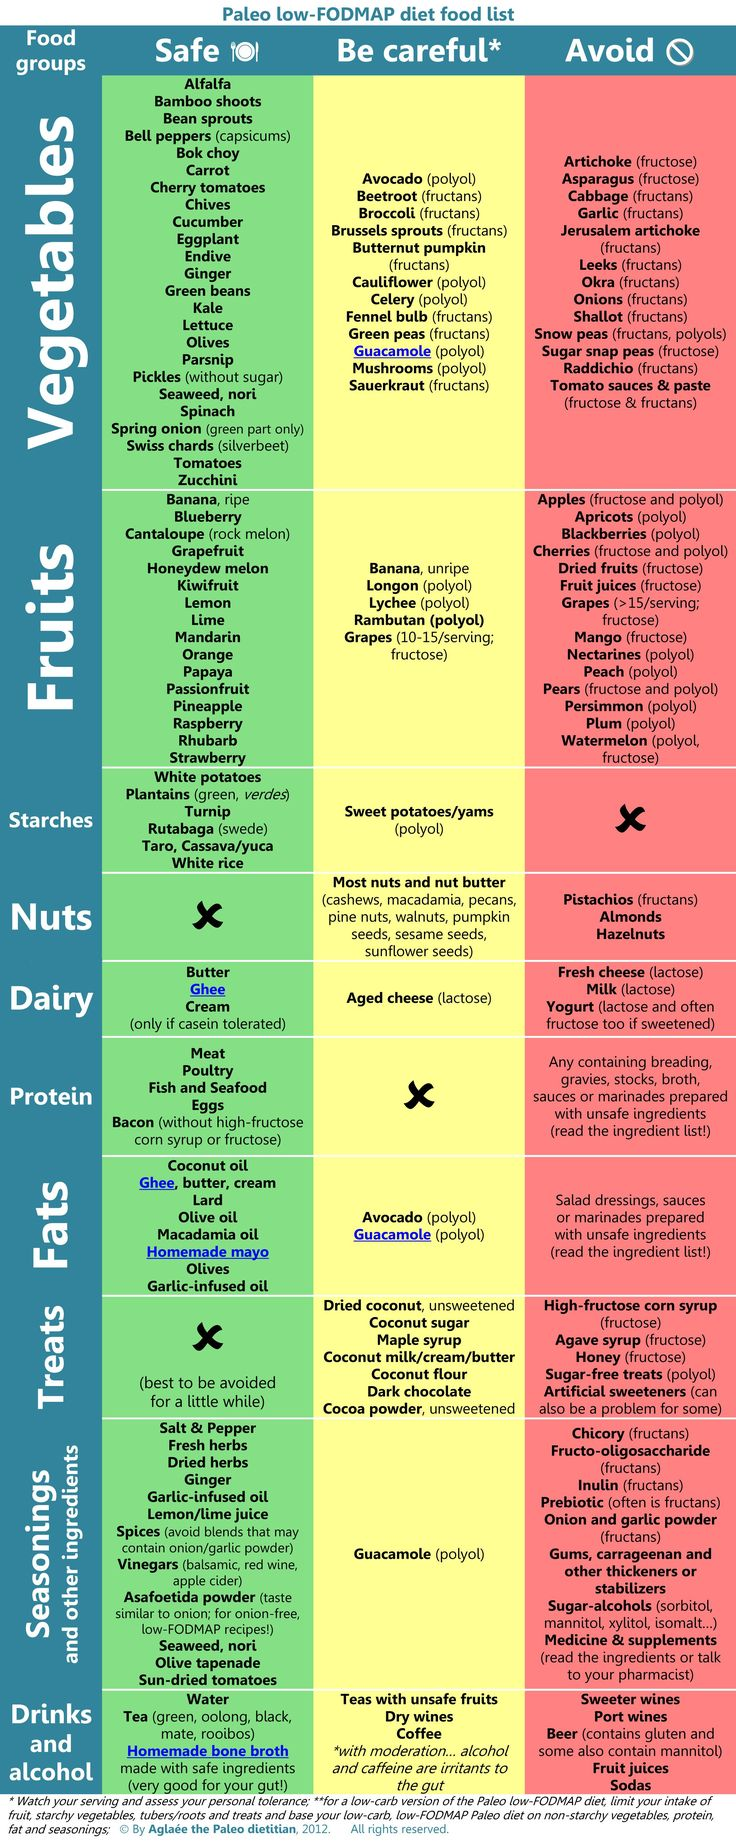 I suffered from IBS until I followed the FODMAP way of life. I now feel at optimum health. FODMAP Table for FODMAP Intolerance (fructose malabsorption)